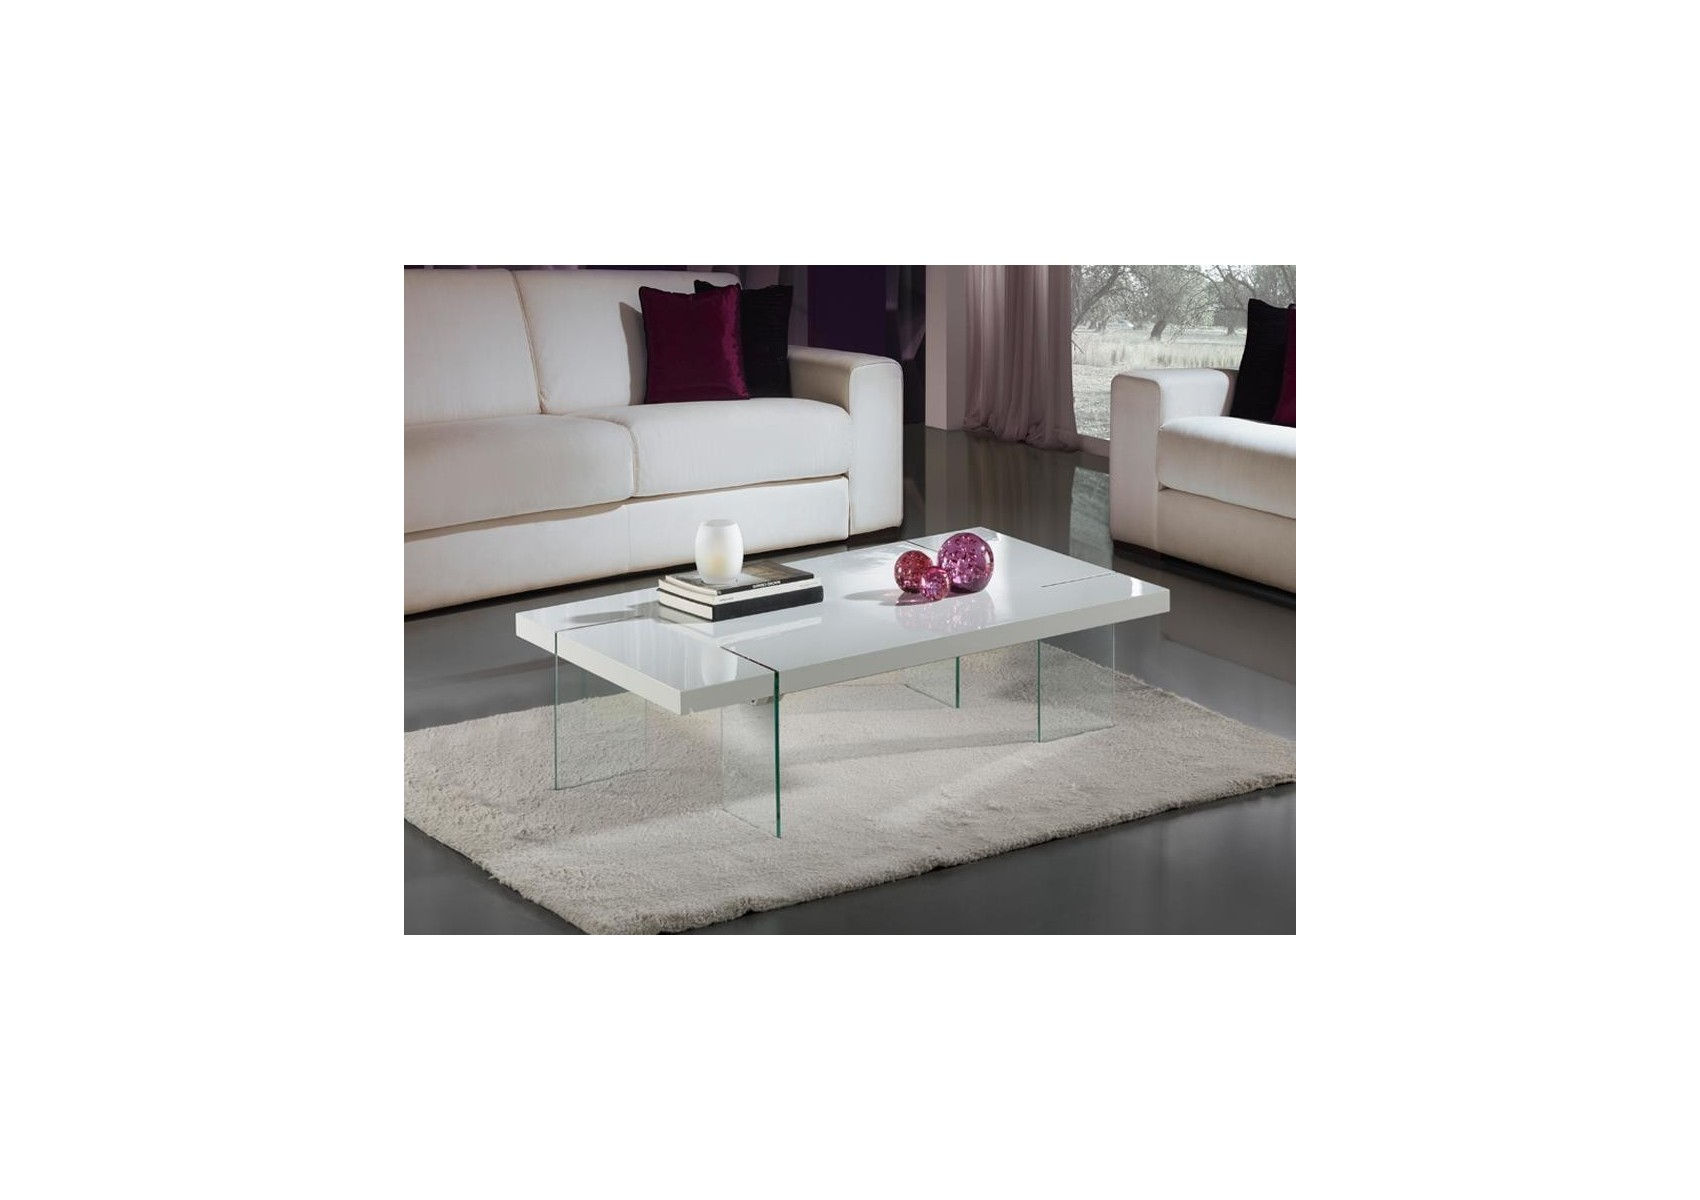 Table basse verre trempe blanc - Table basse blanc verre ...